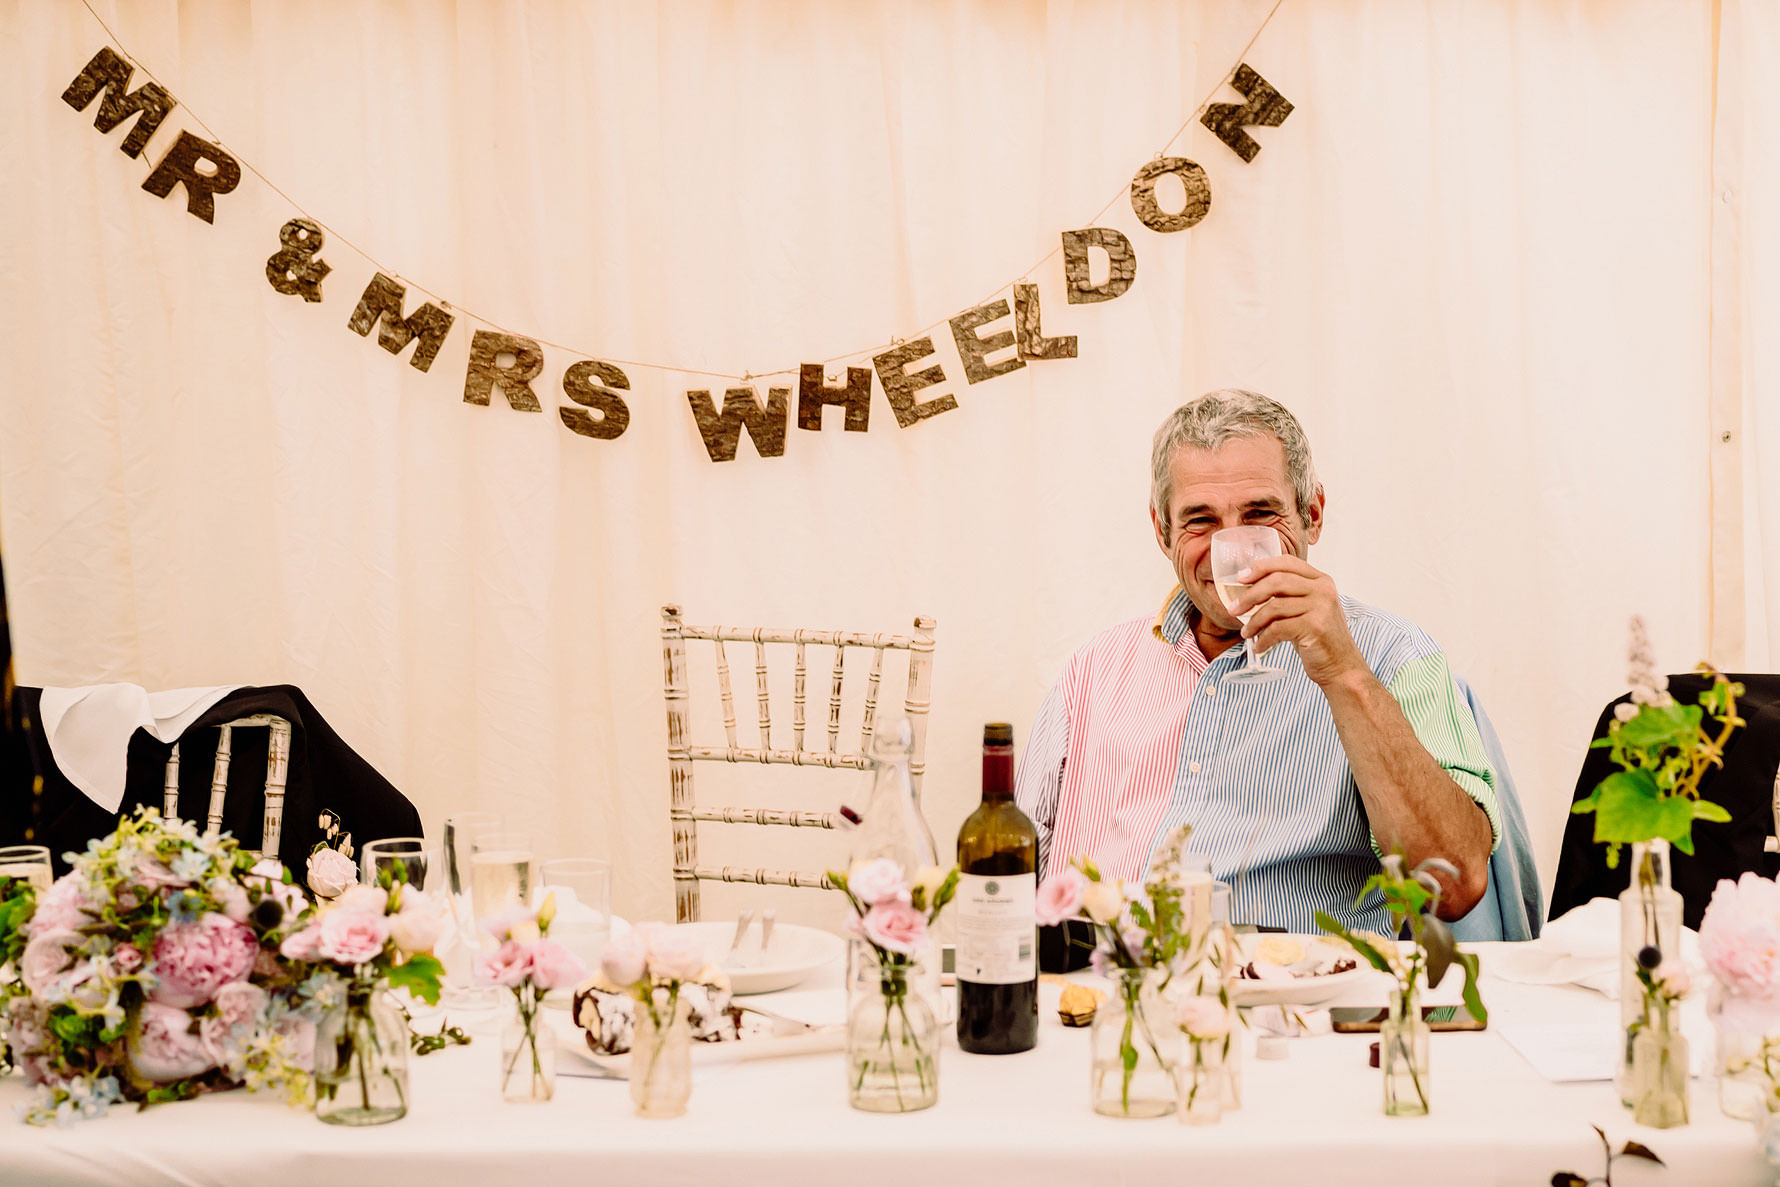 father of the bride drinking wine